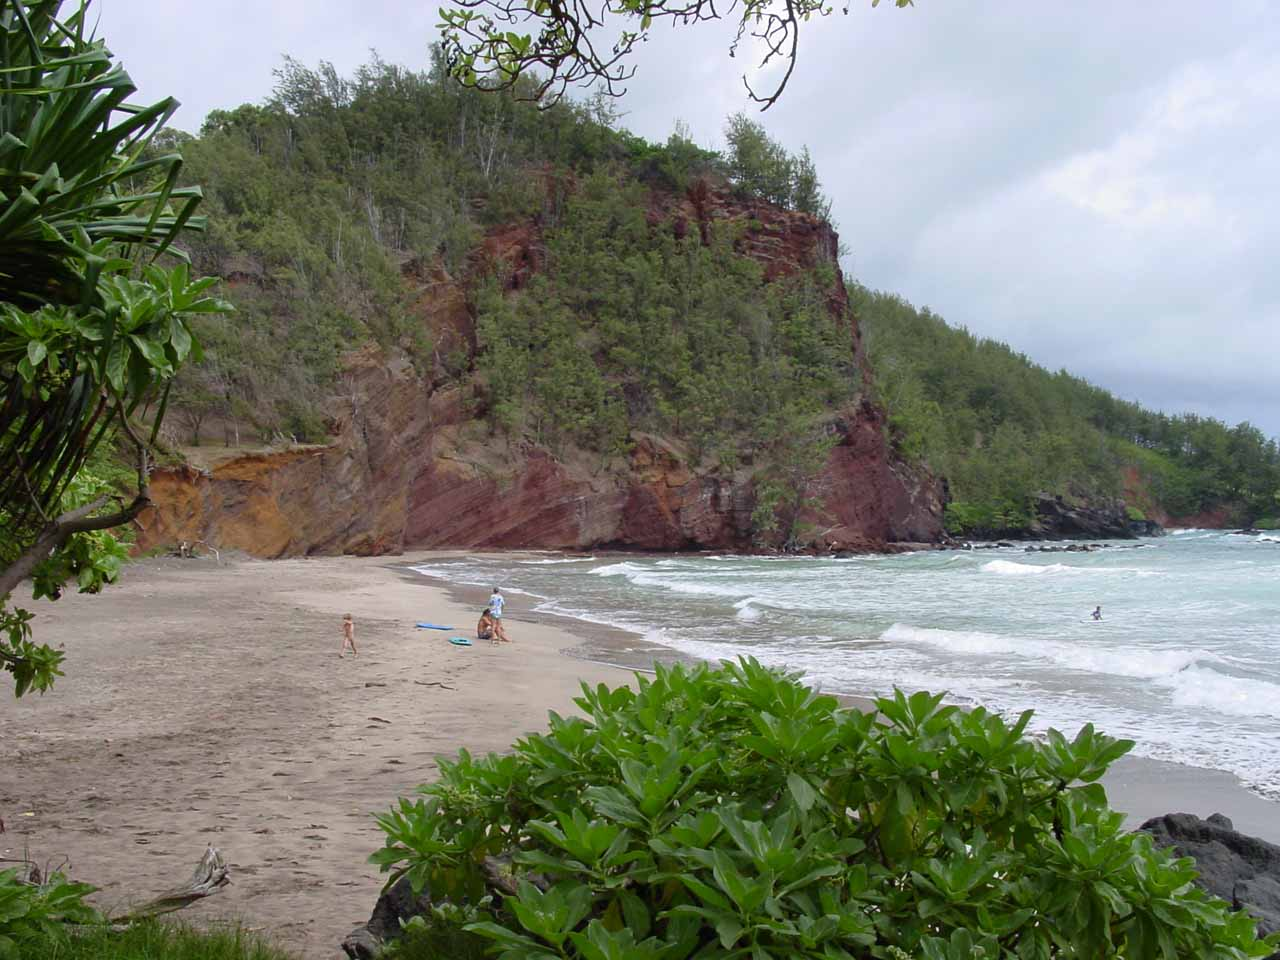 One of the beaches not far from Hana